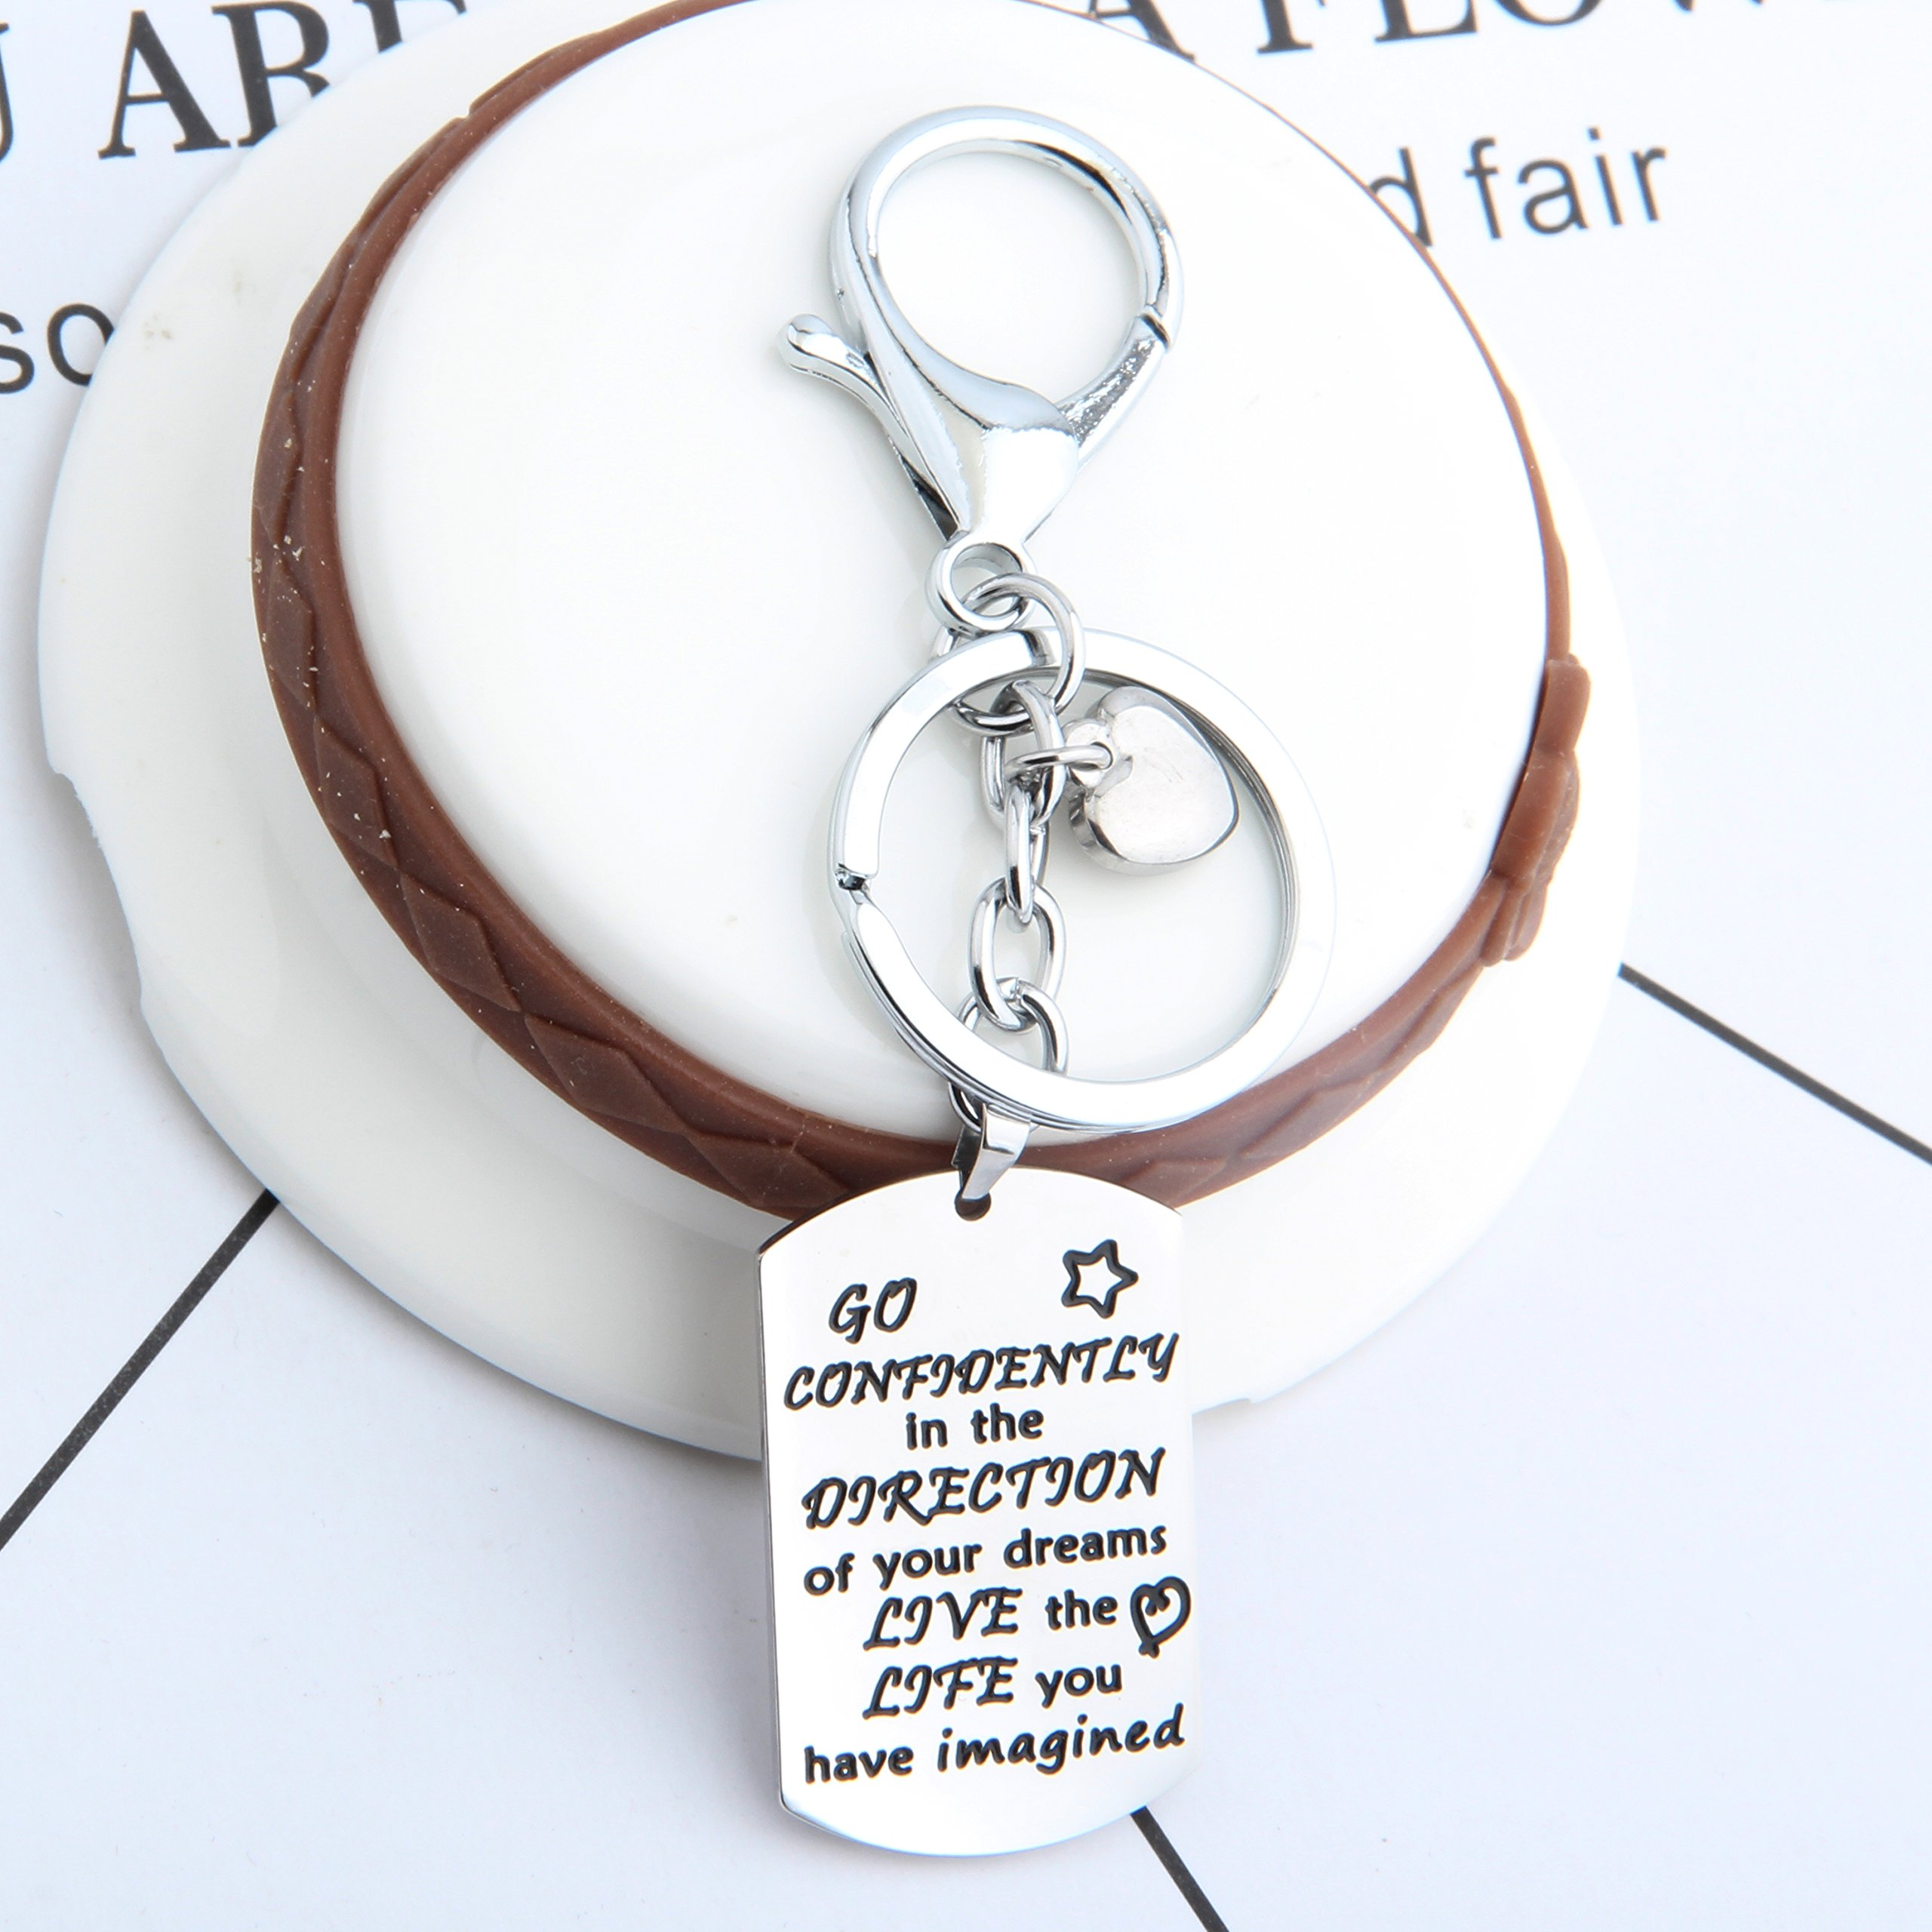 Gzrlyf Graduation Keychain Go Confidently In The Direction Of Your Dreams Keychain Inspirational Gift (keychain) by Gzrlyf (Image #4)